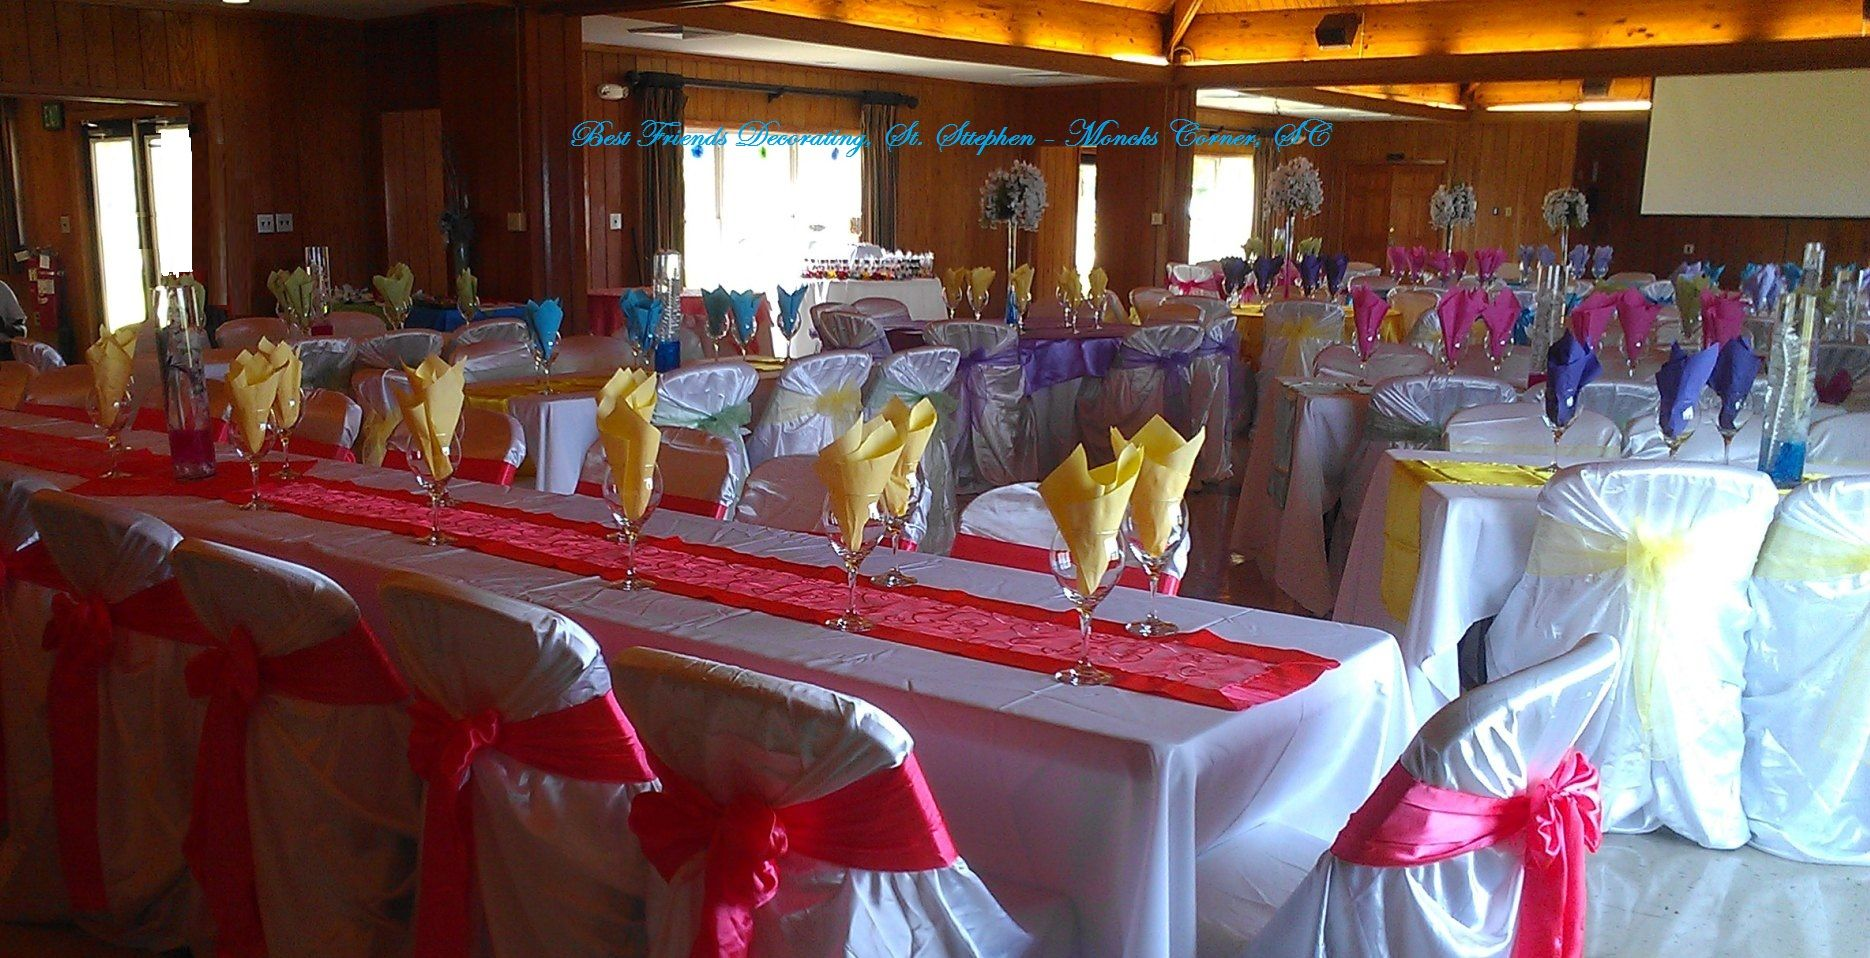 Hawaiian Tropical birthday party with view of rectangular tables.